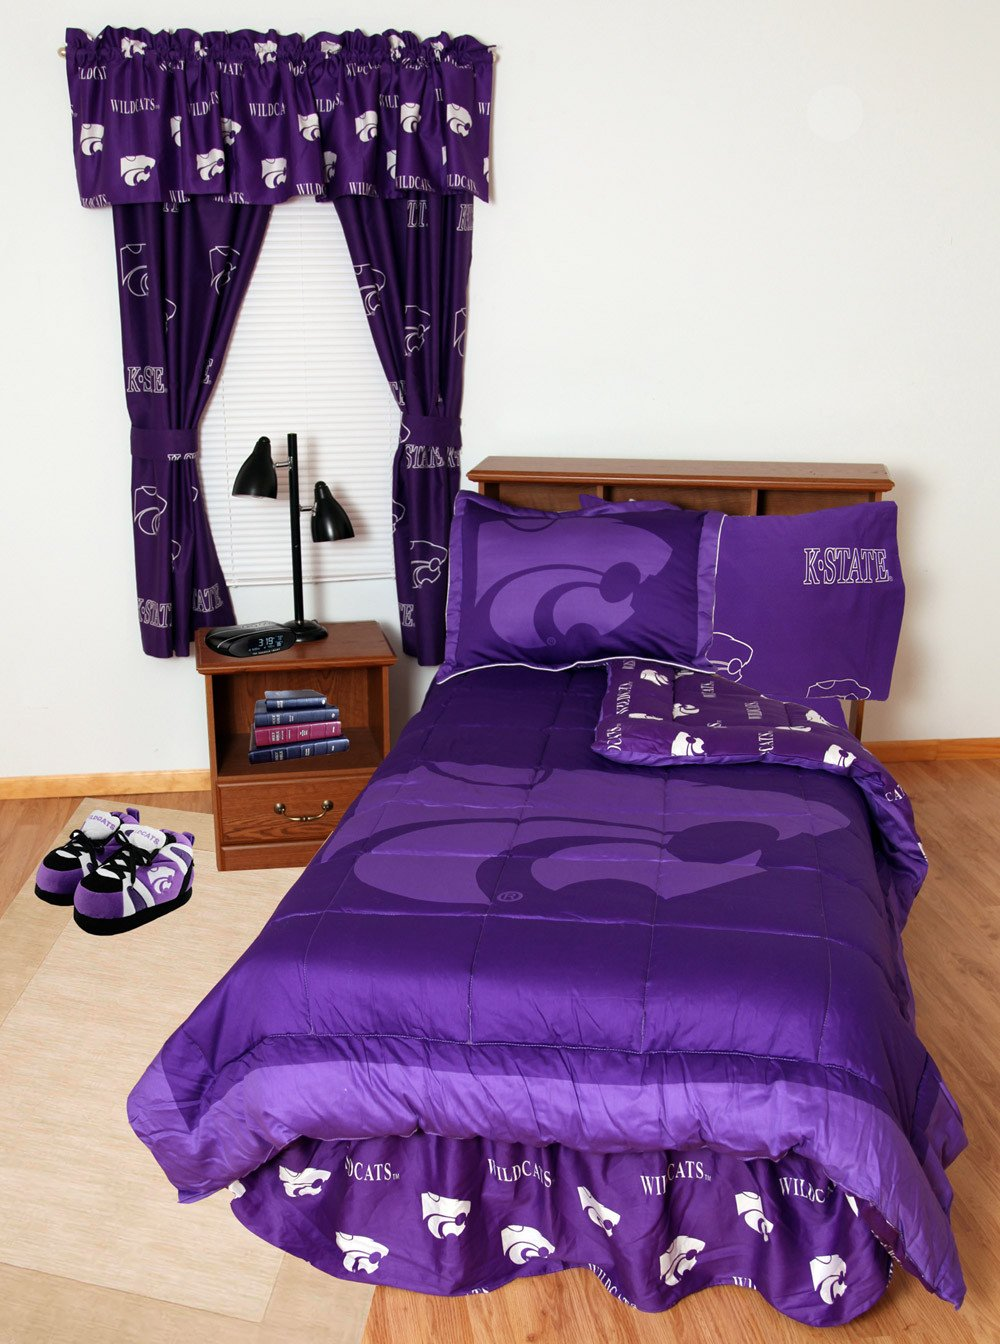 Kansas State Bed in a Bag King - With Team Colored Sheets - KSUBBKG by College Covers from College Covers